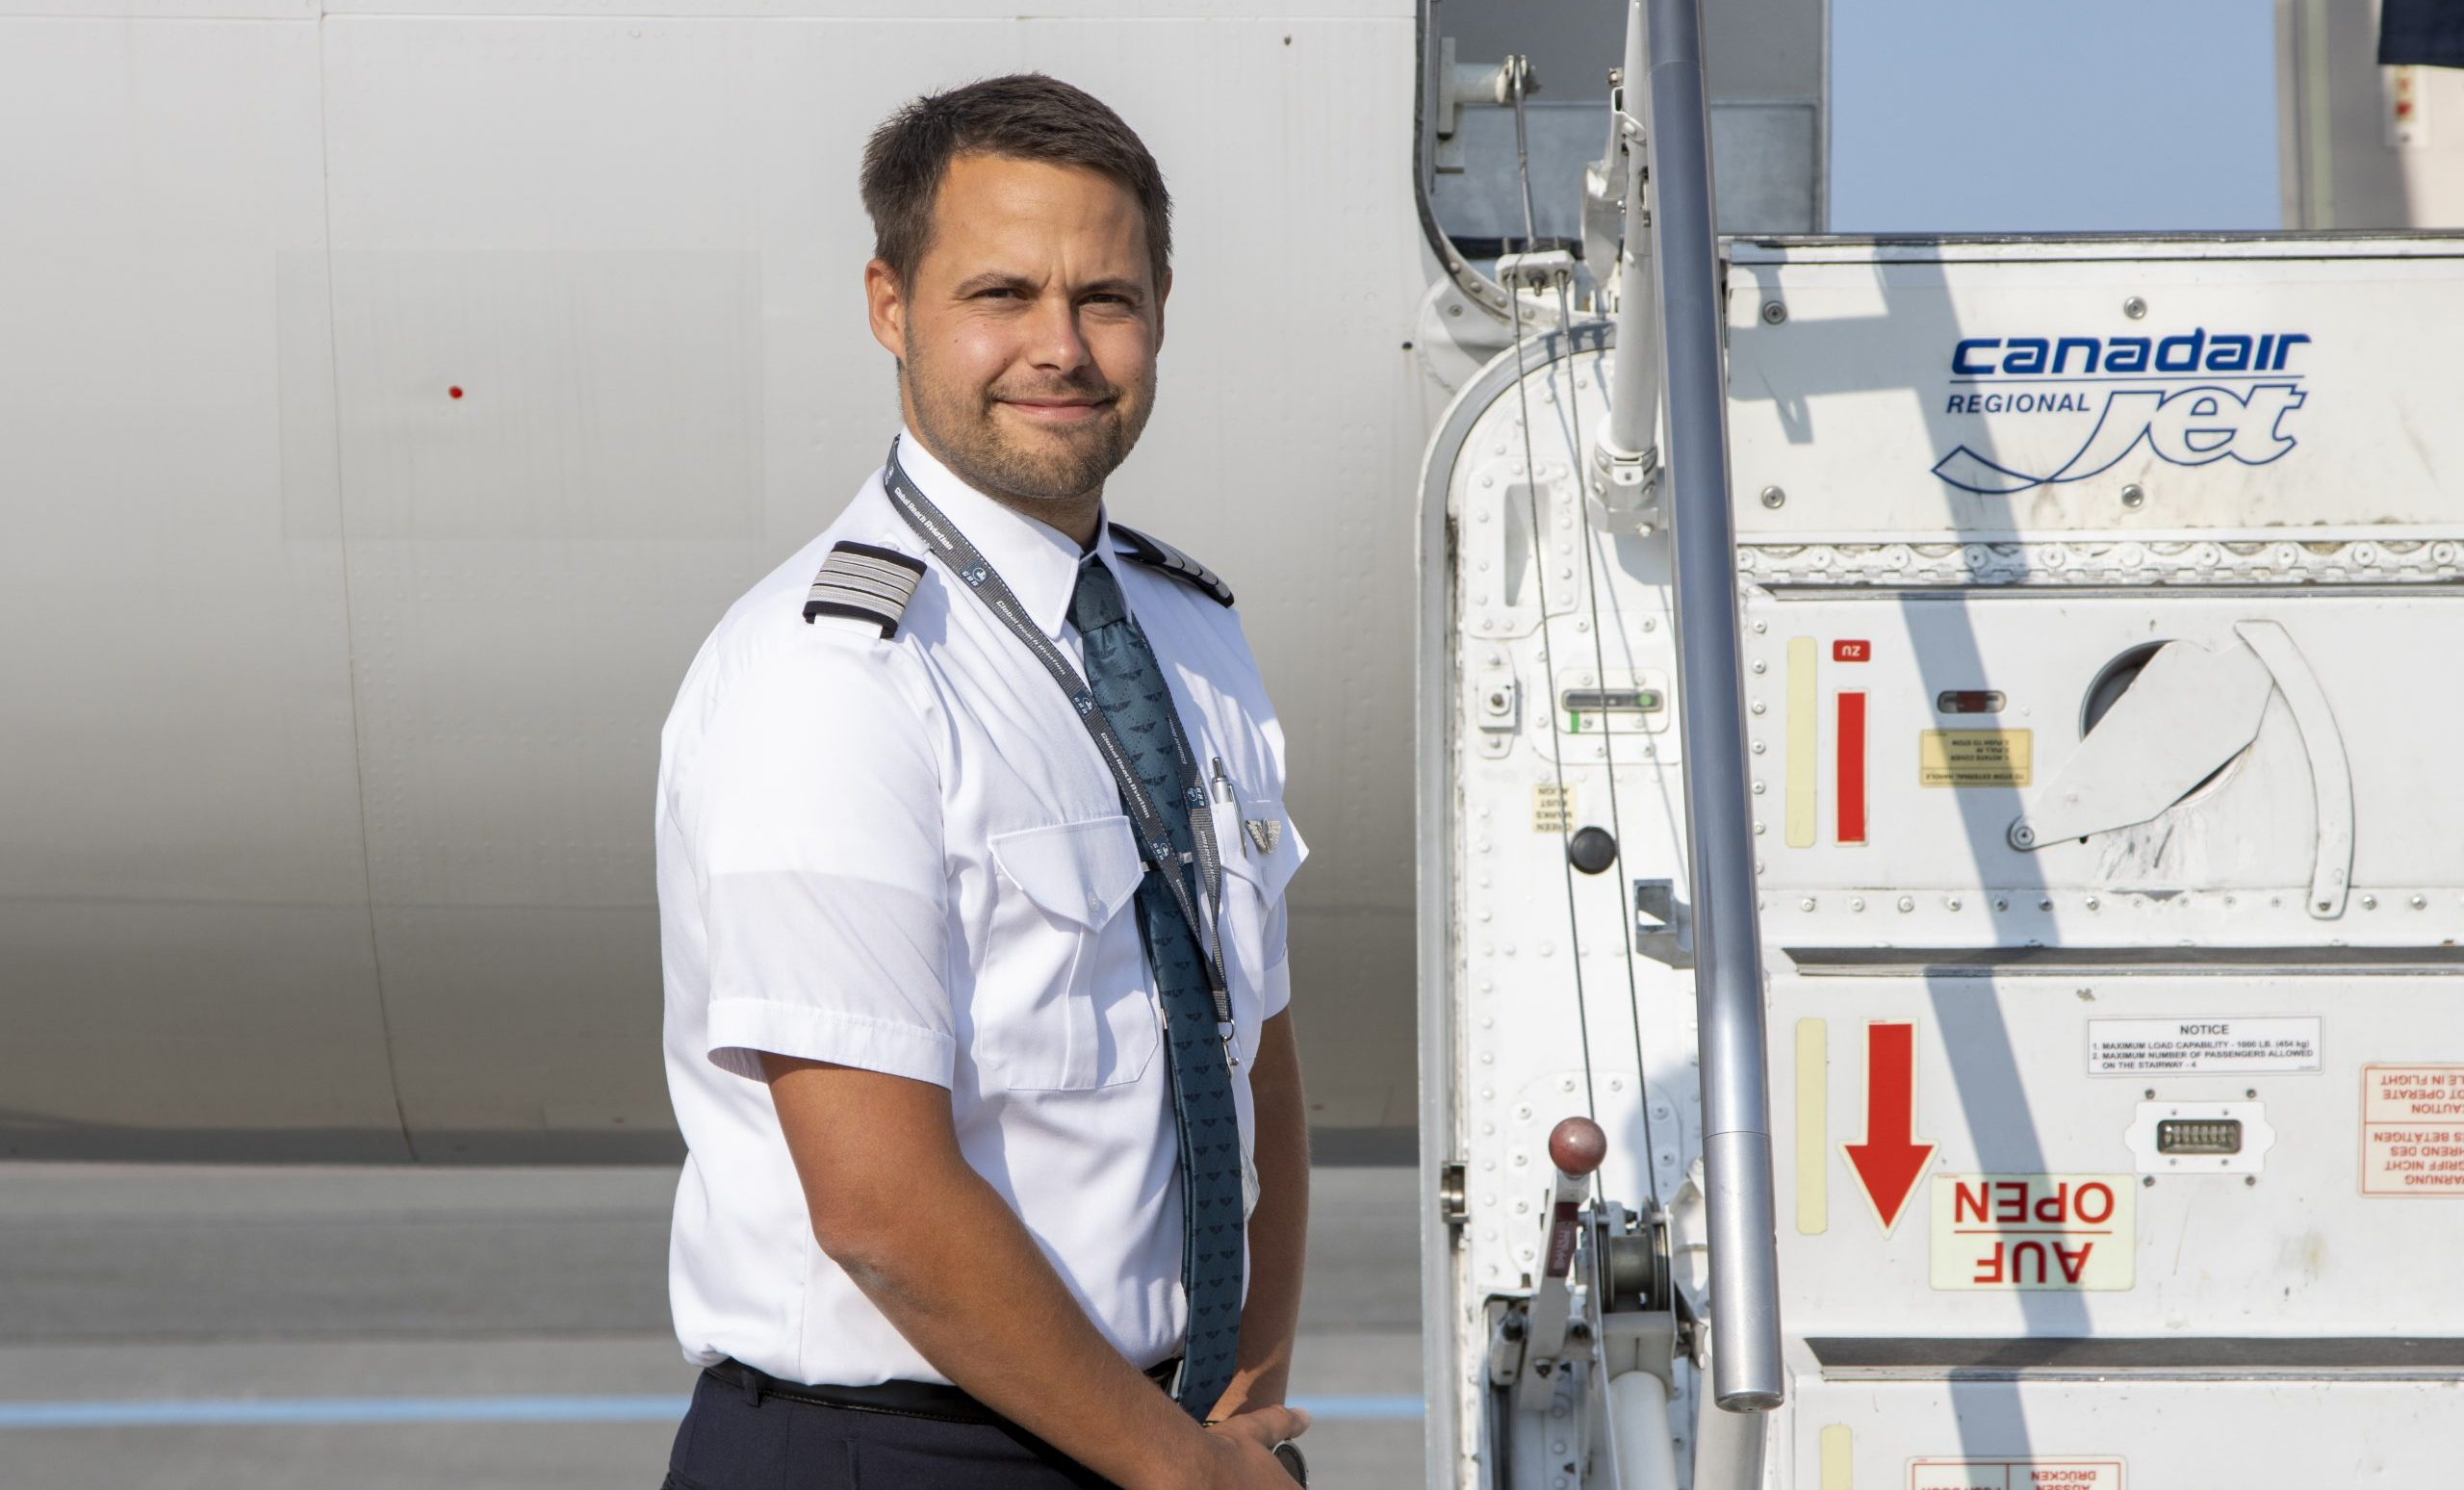 Kaptajn Poul Lind foran CRj-200-flyet fra Global Reach Aviation. Foto: Rasmus Rudloff/CAT